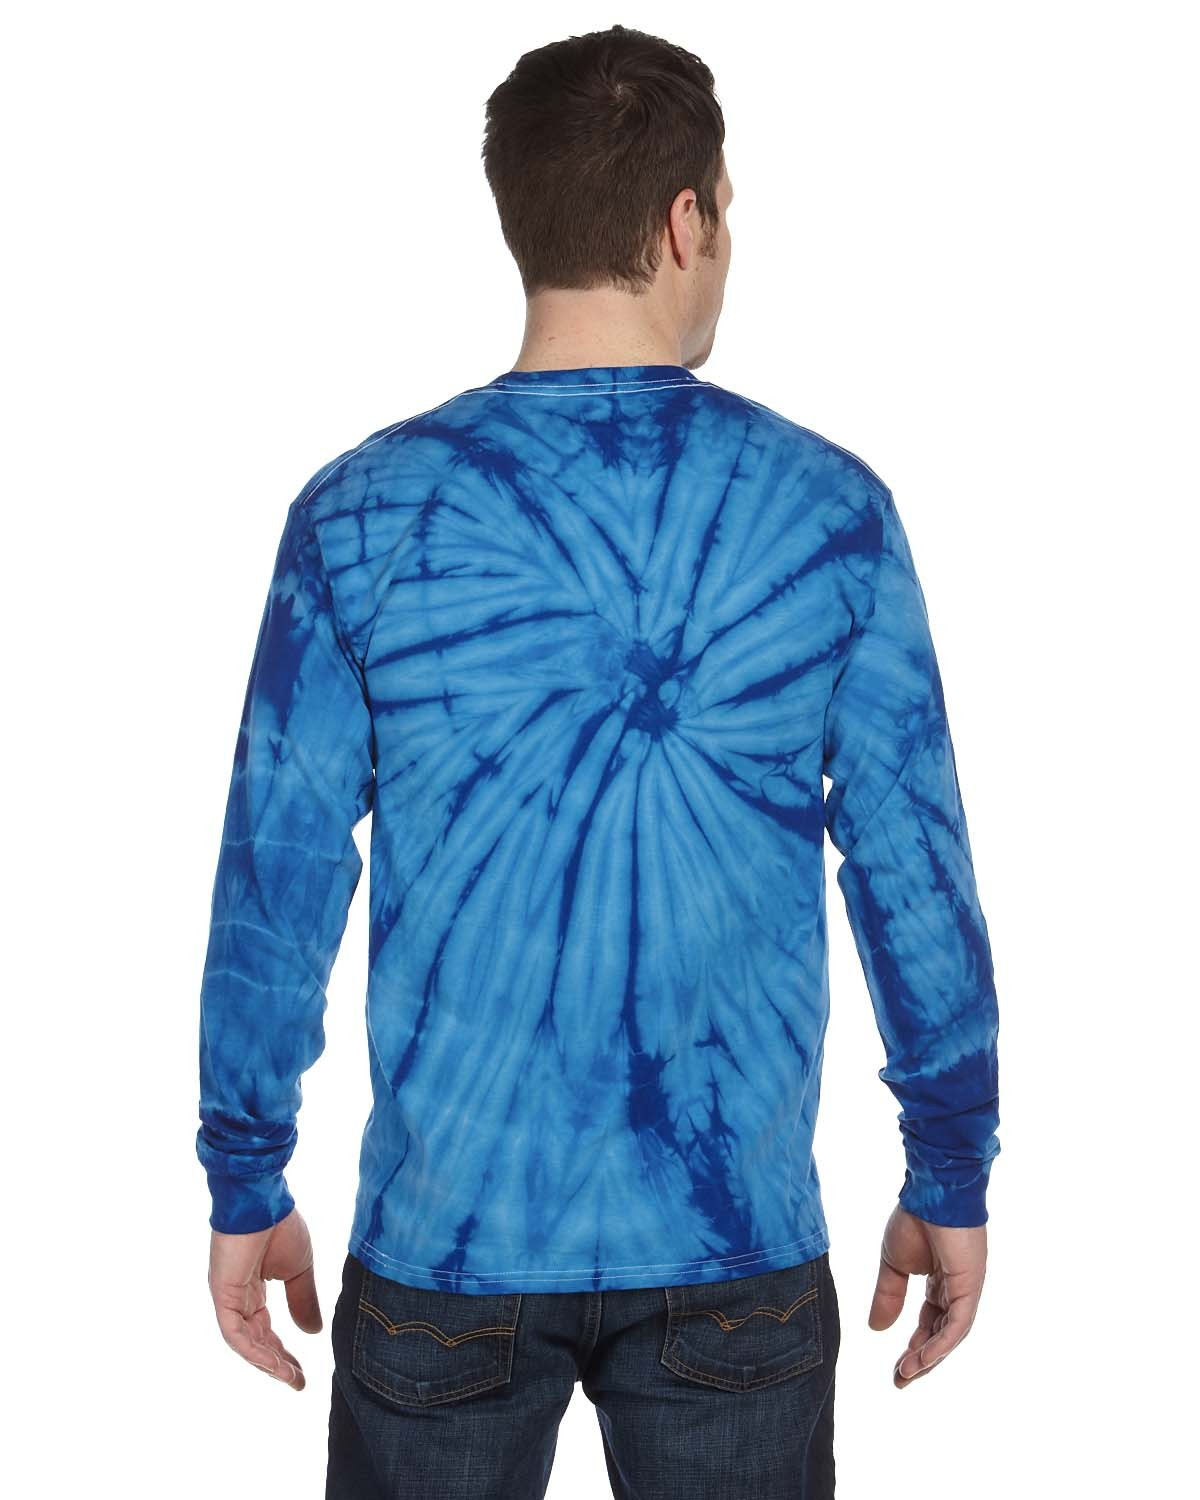 CD2000 Tie-Dye SPIDER ROYAL